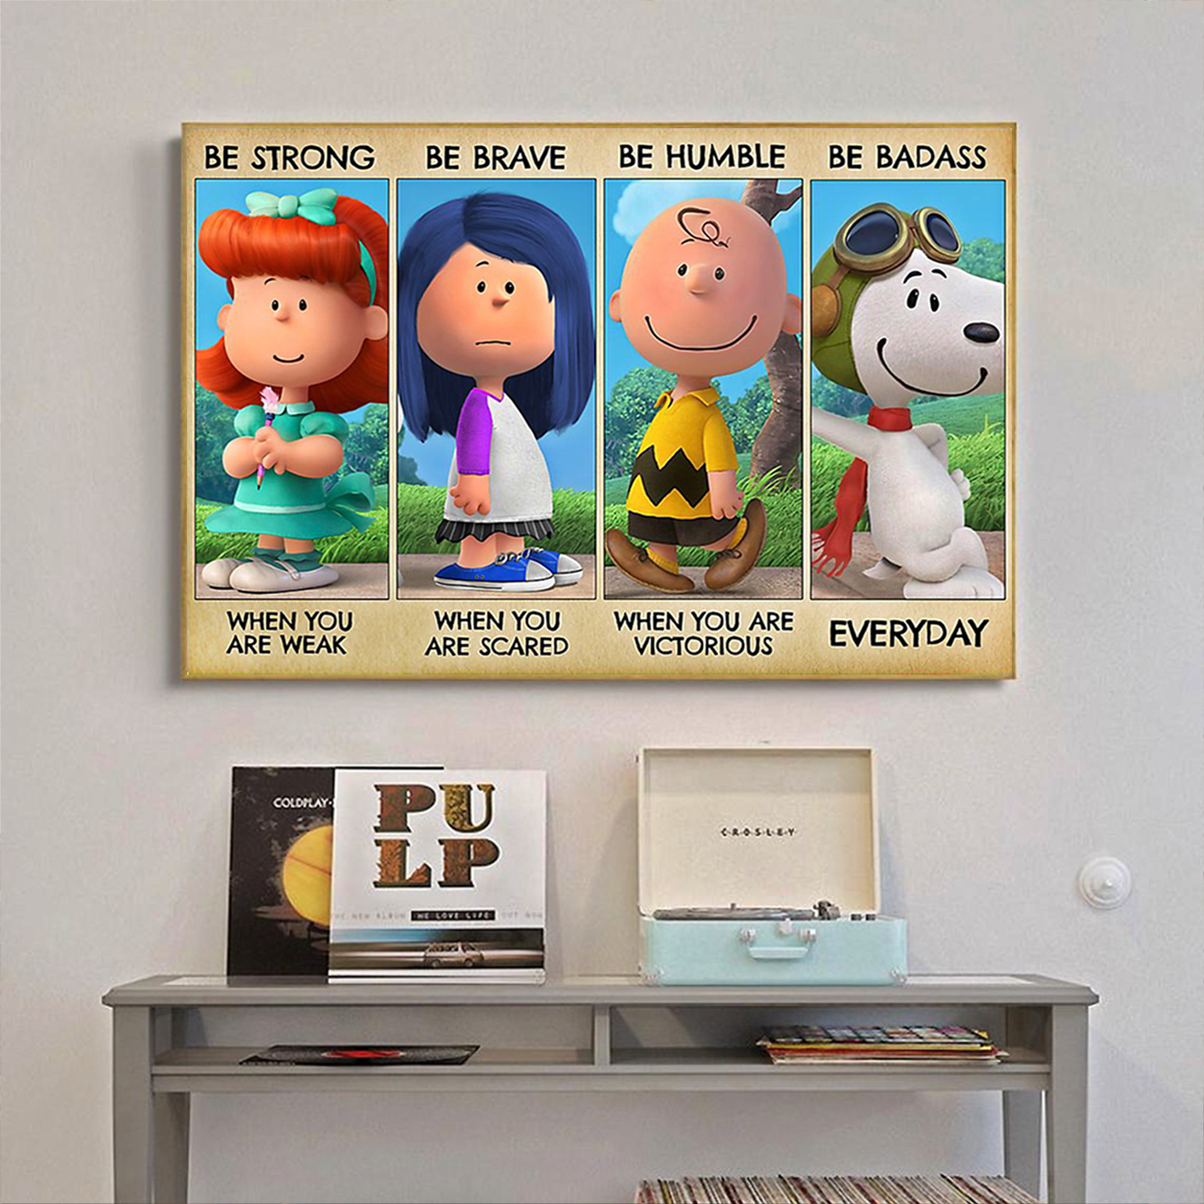 Peanuts characters be strong be brave be humble be badass poster A3